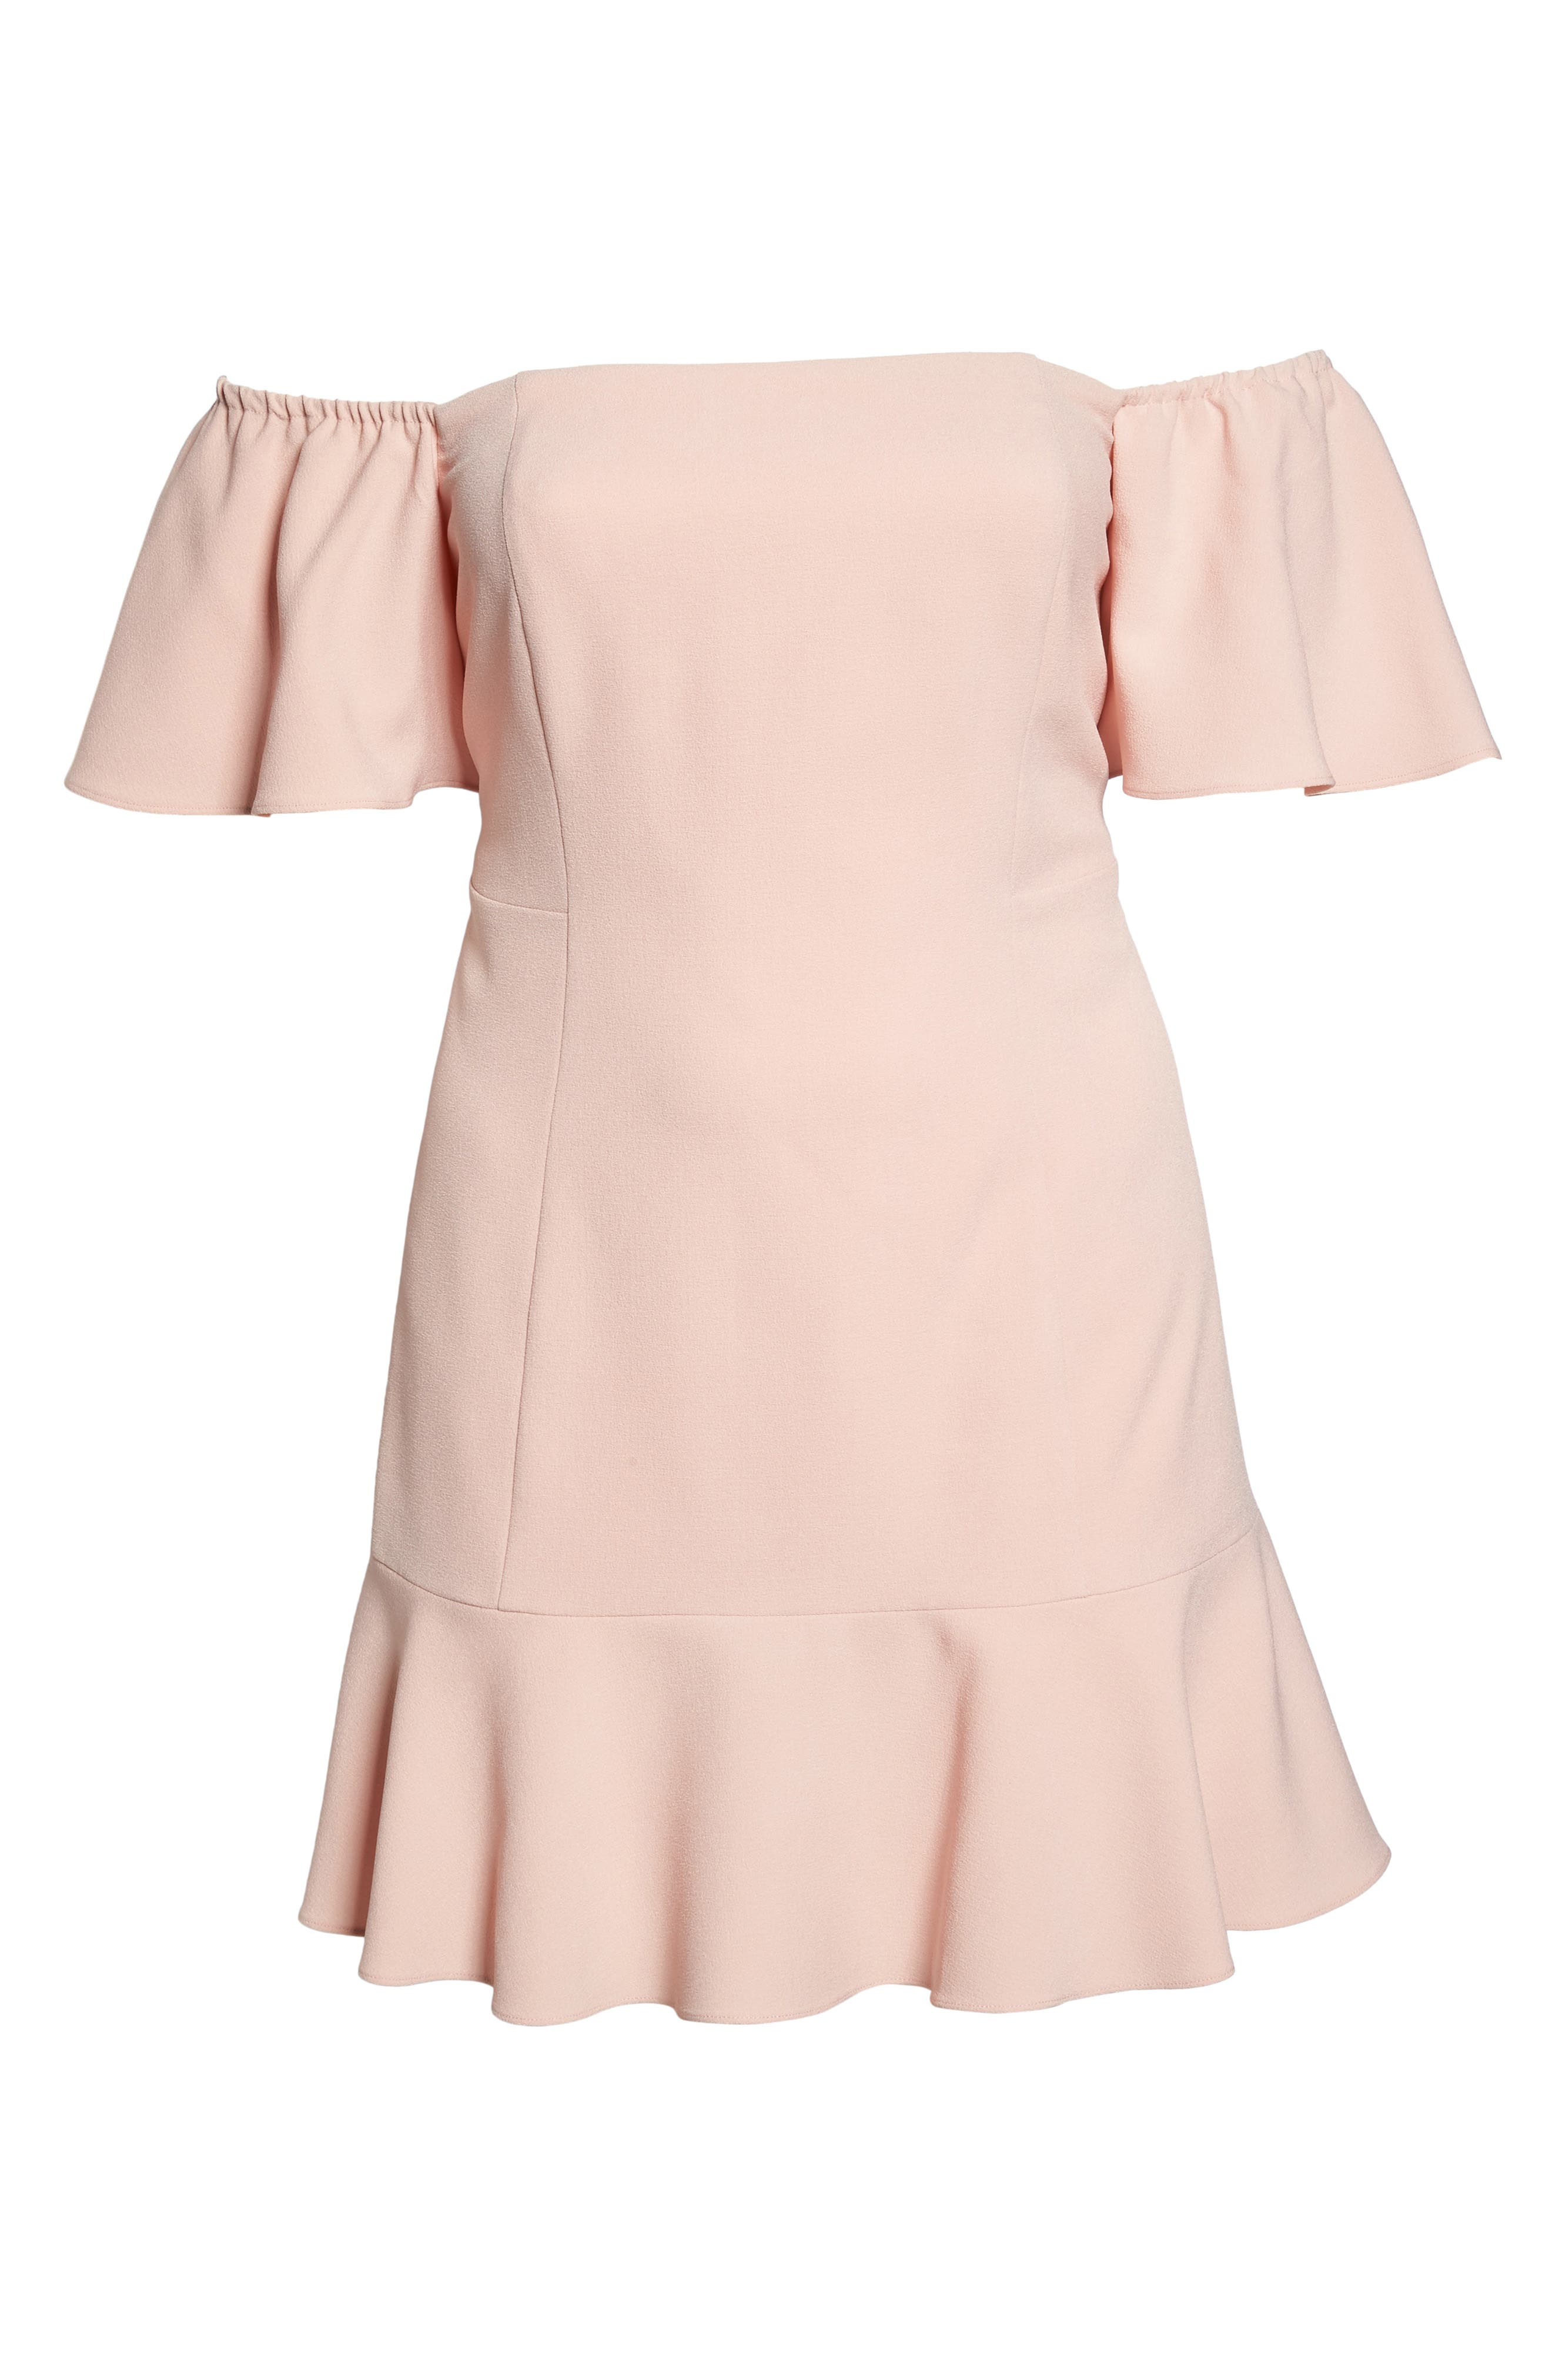 Off the Shoulder Crepe Dress,                             Alternate thumbnail 6, color,                             Blush